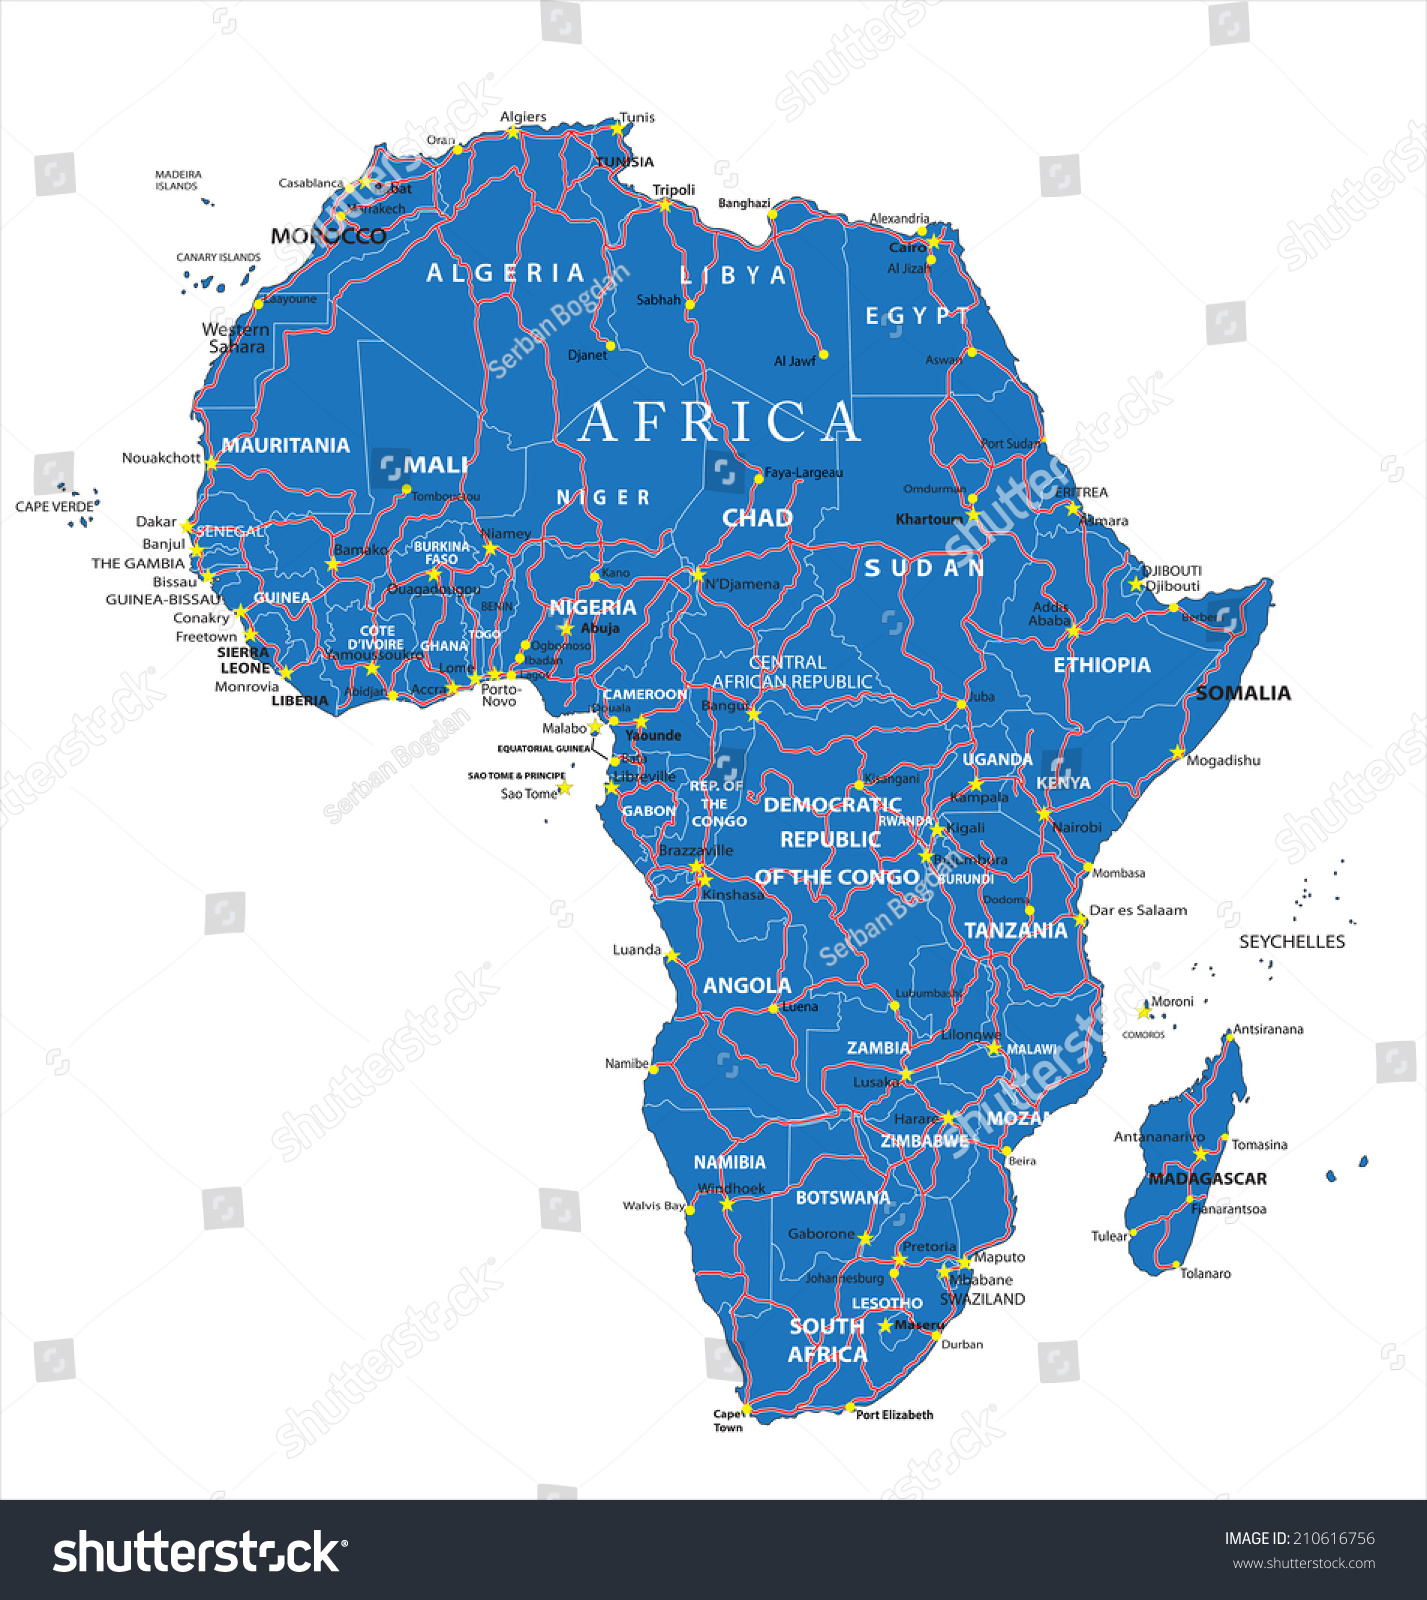 Africa Road Map Stock Vector Shutterstock - Angola road map